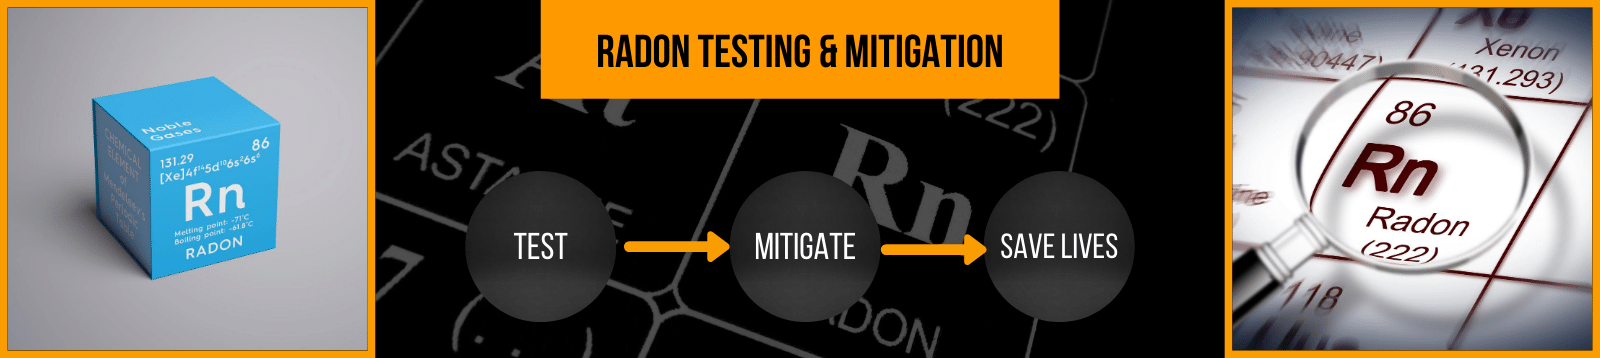 Radon testing and mitigation for Omaha, NE and Western Iowa